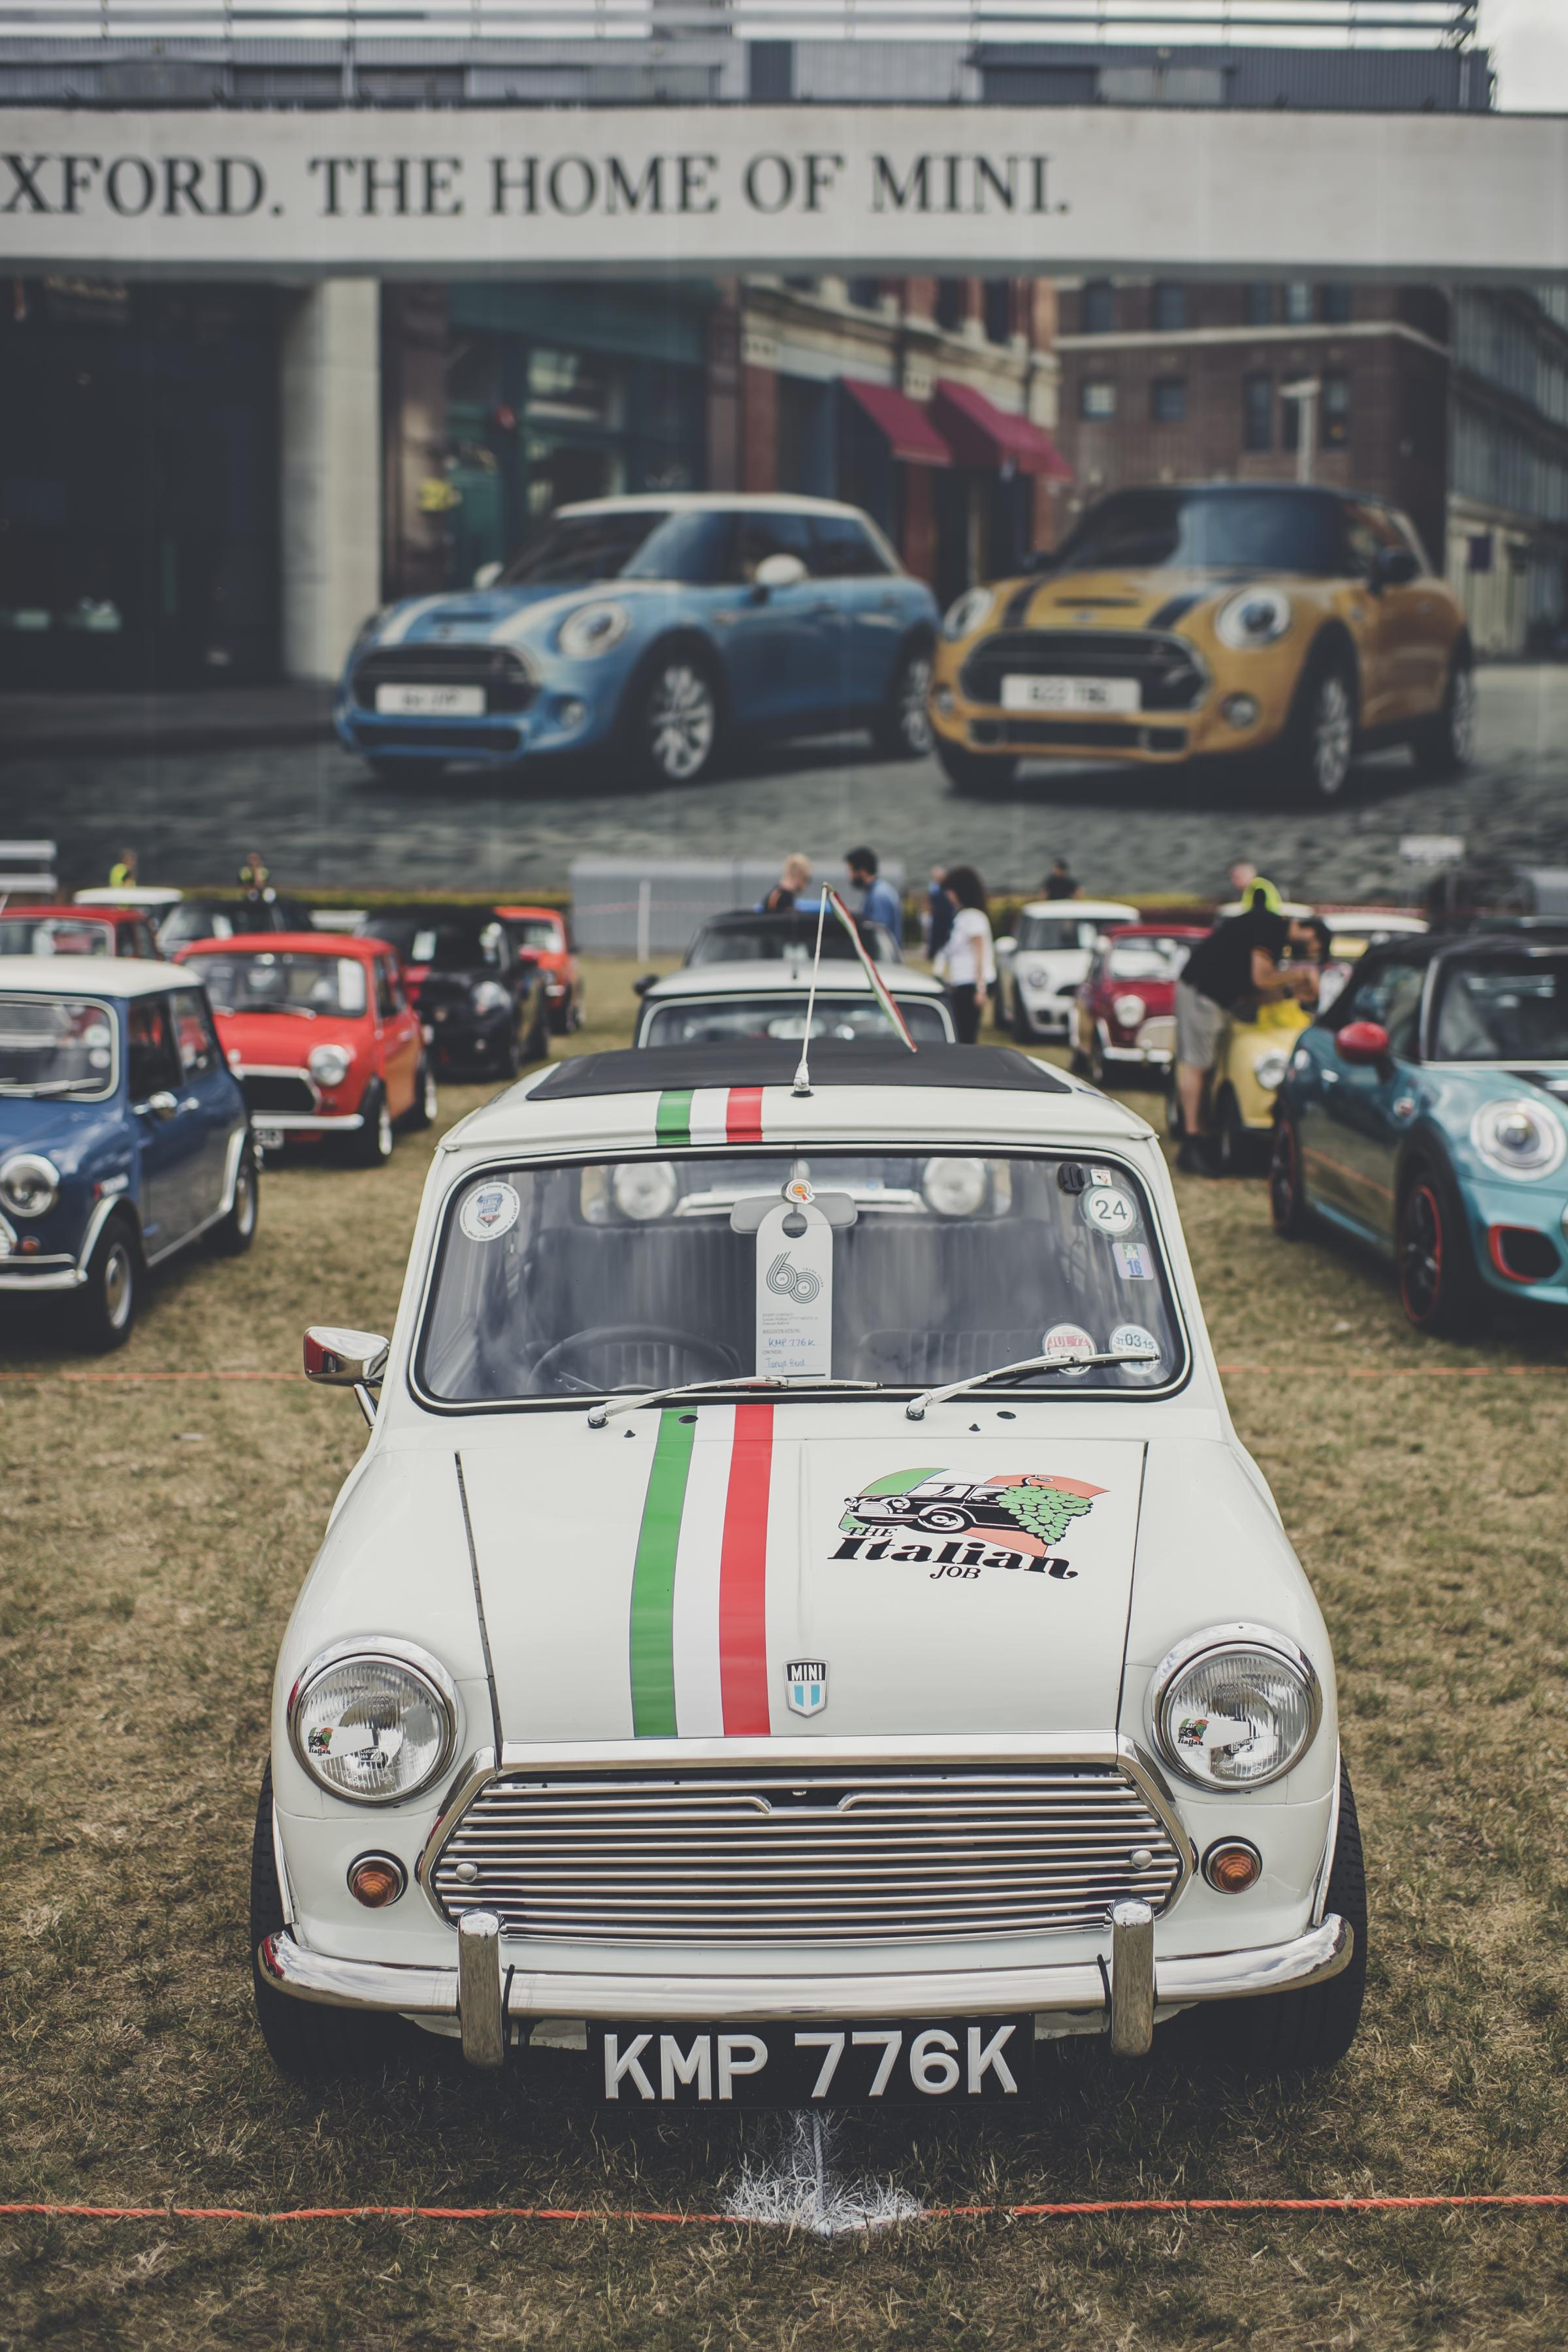 60 Minis gather at brand's 60th anniversary celebrations in Oxford